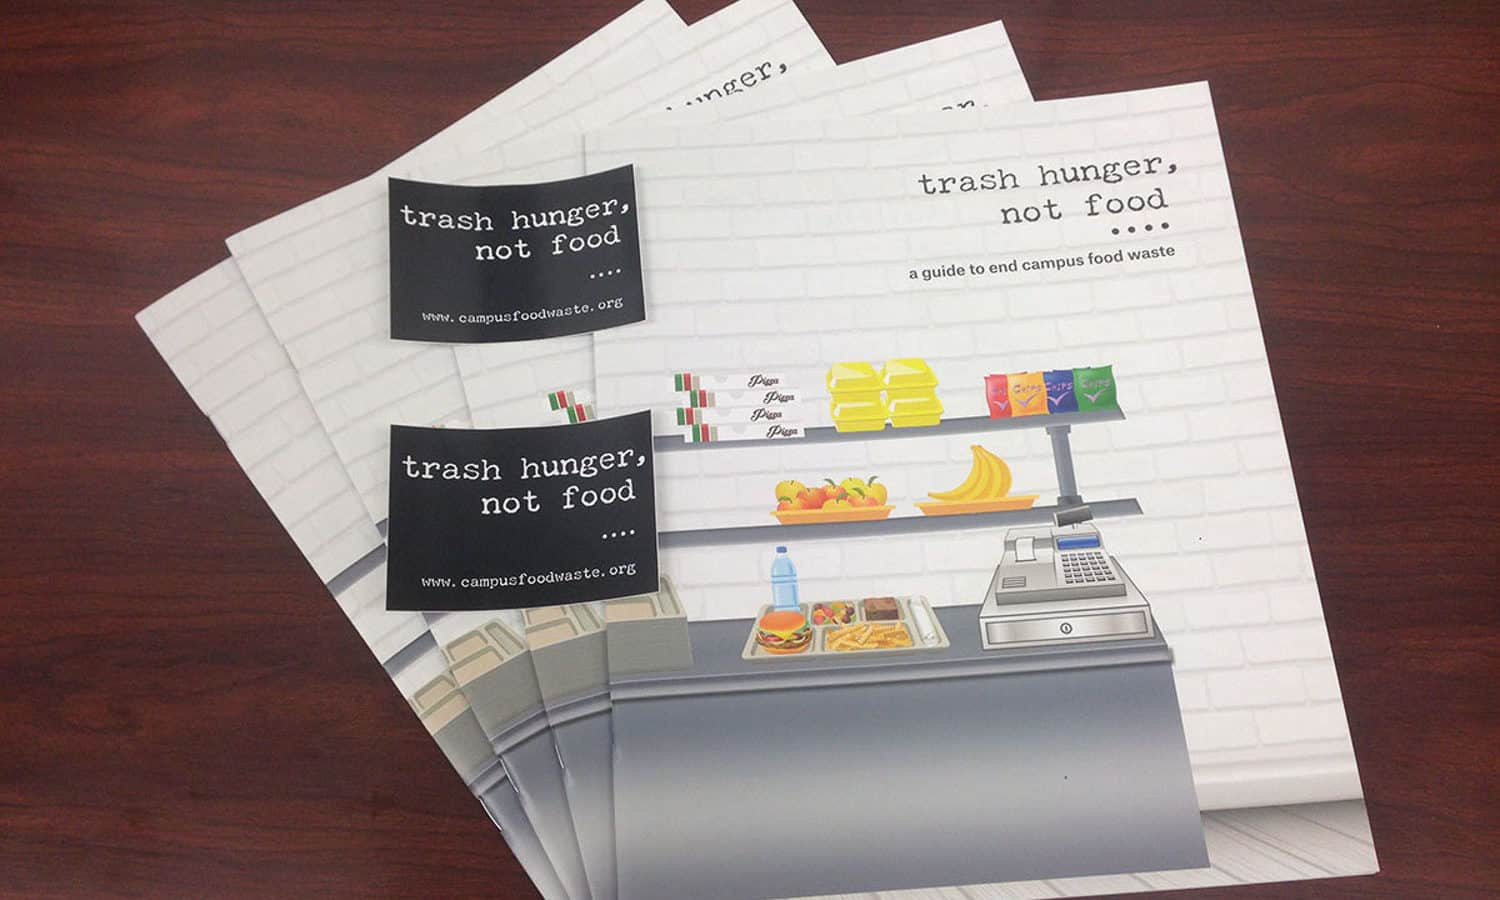 New Report, Trash Hunger, Not Food: A Guide to End Food Waste on Campus, provides resources to students seeking to reduce food waste at their school.